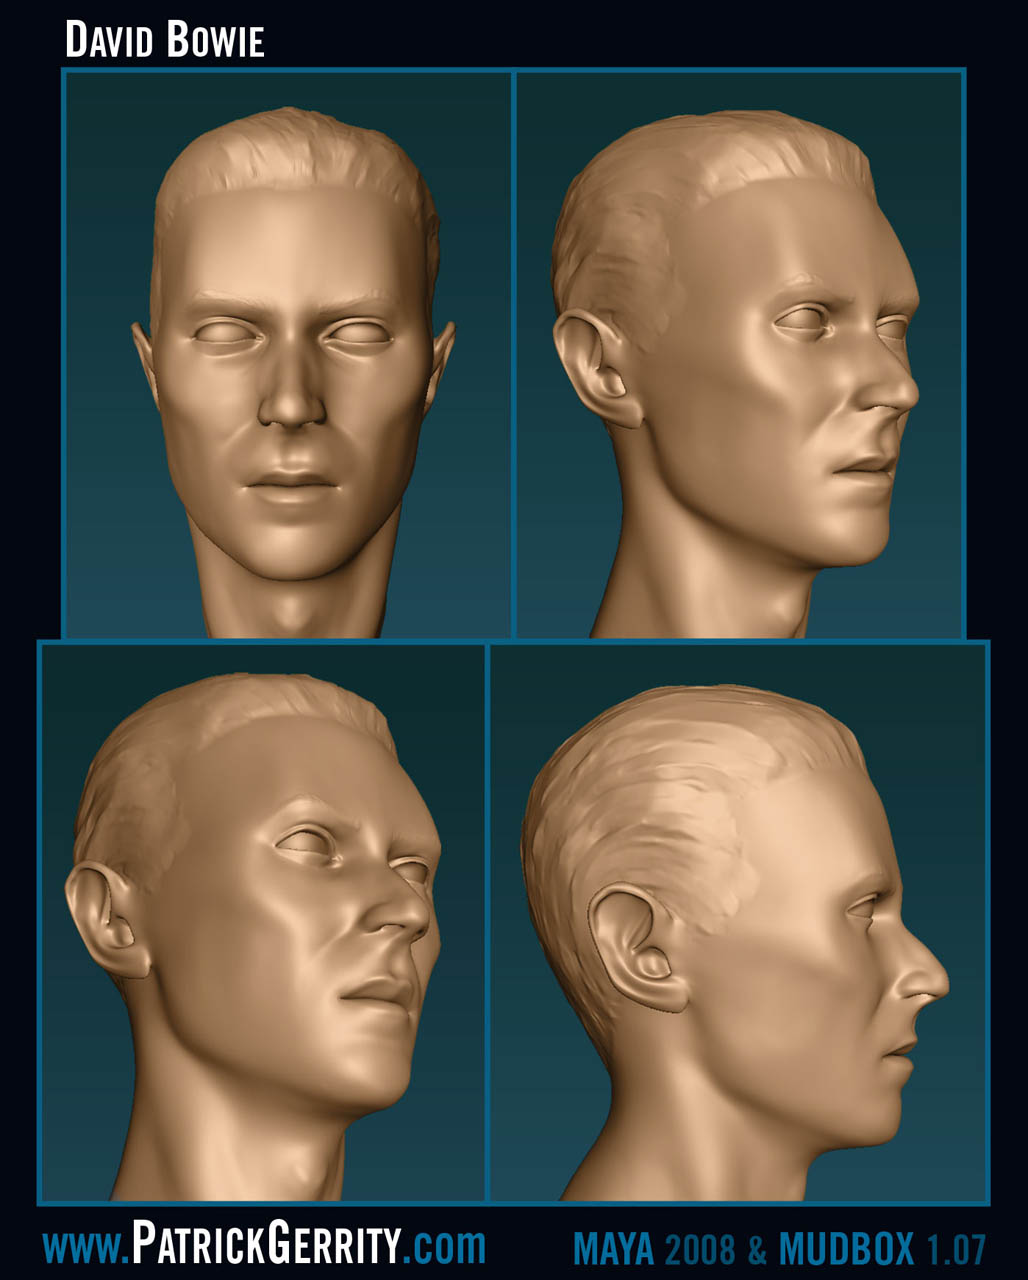 David Bowie modeled in 3D